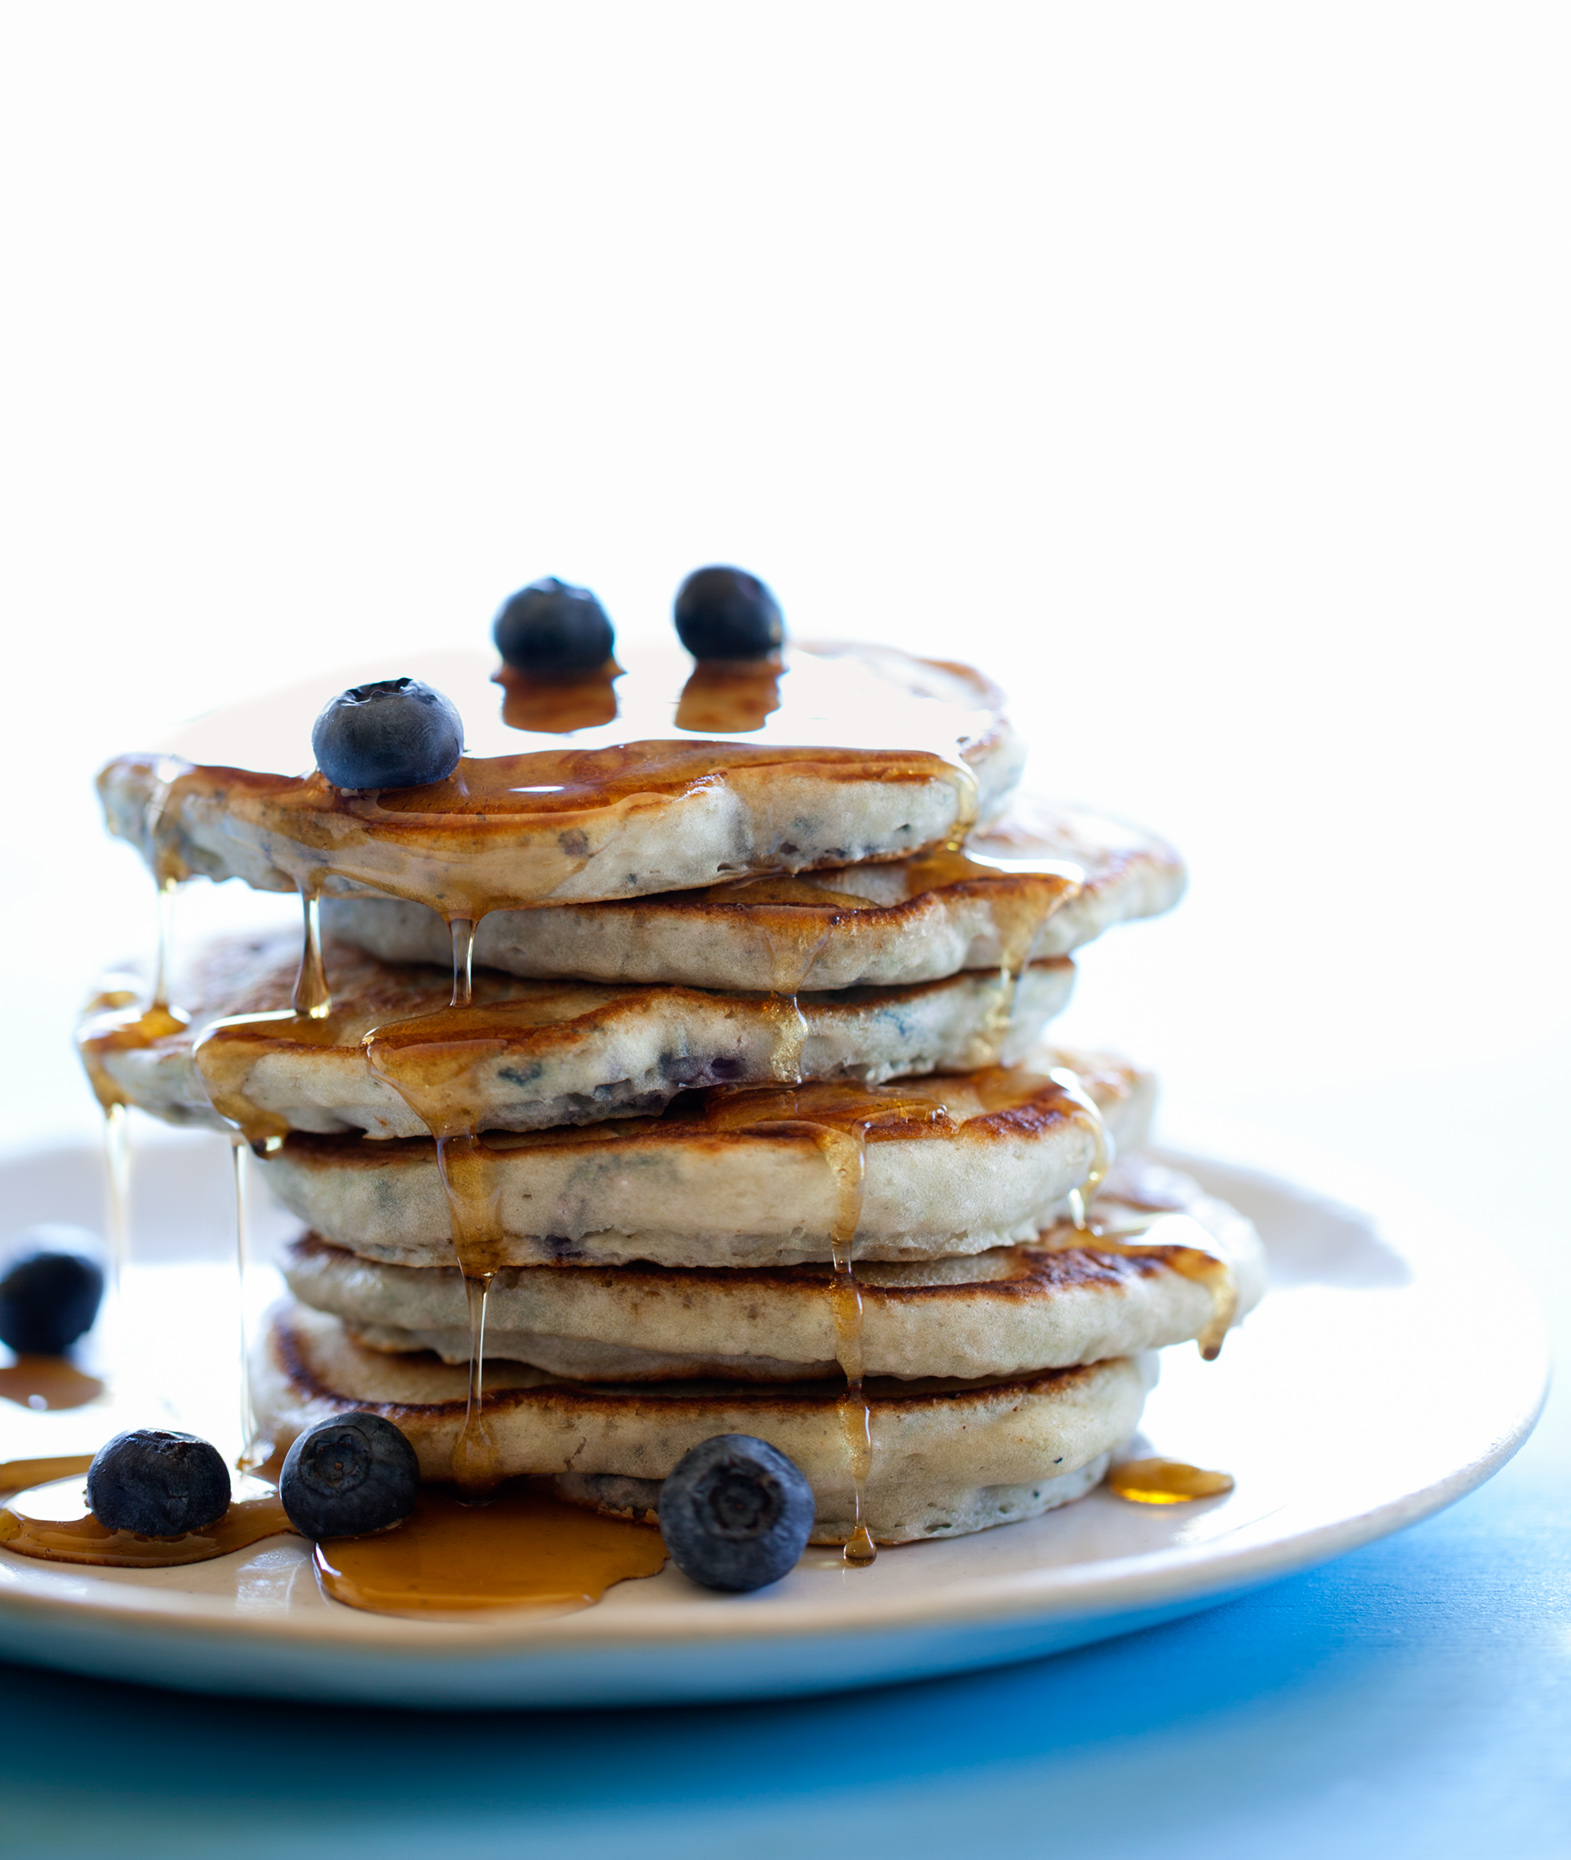 Pancakes - by Food and Product photographer Teri Lyn Fisher